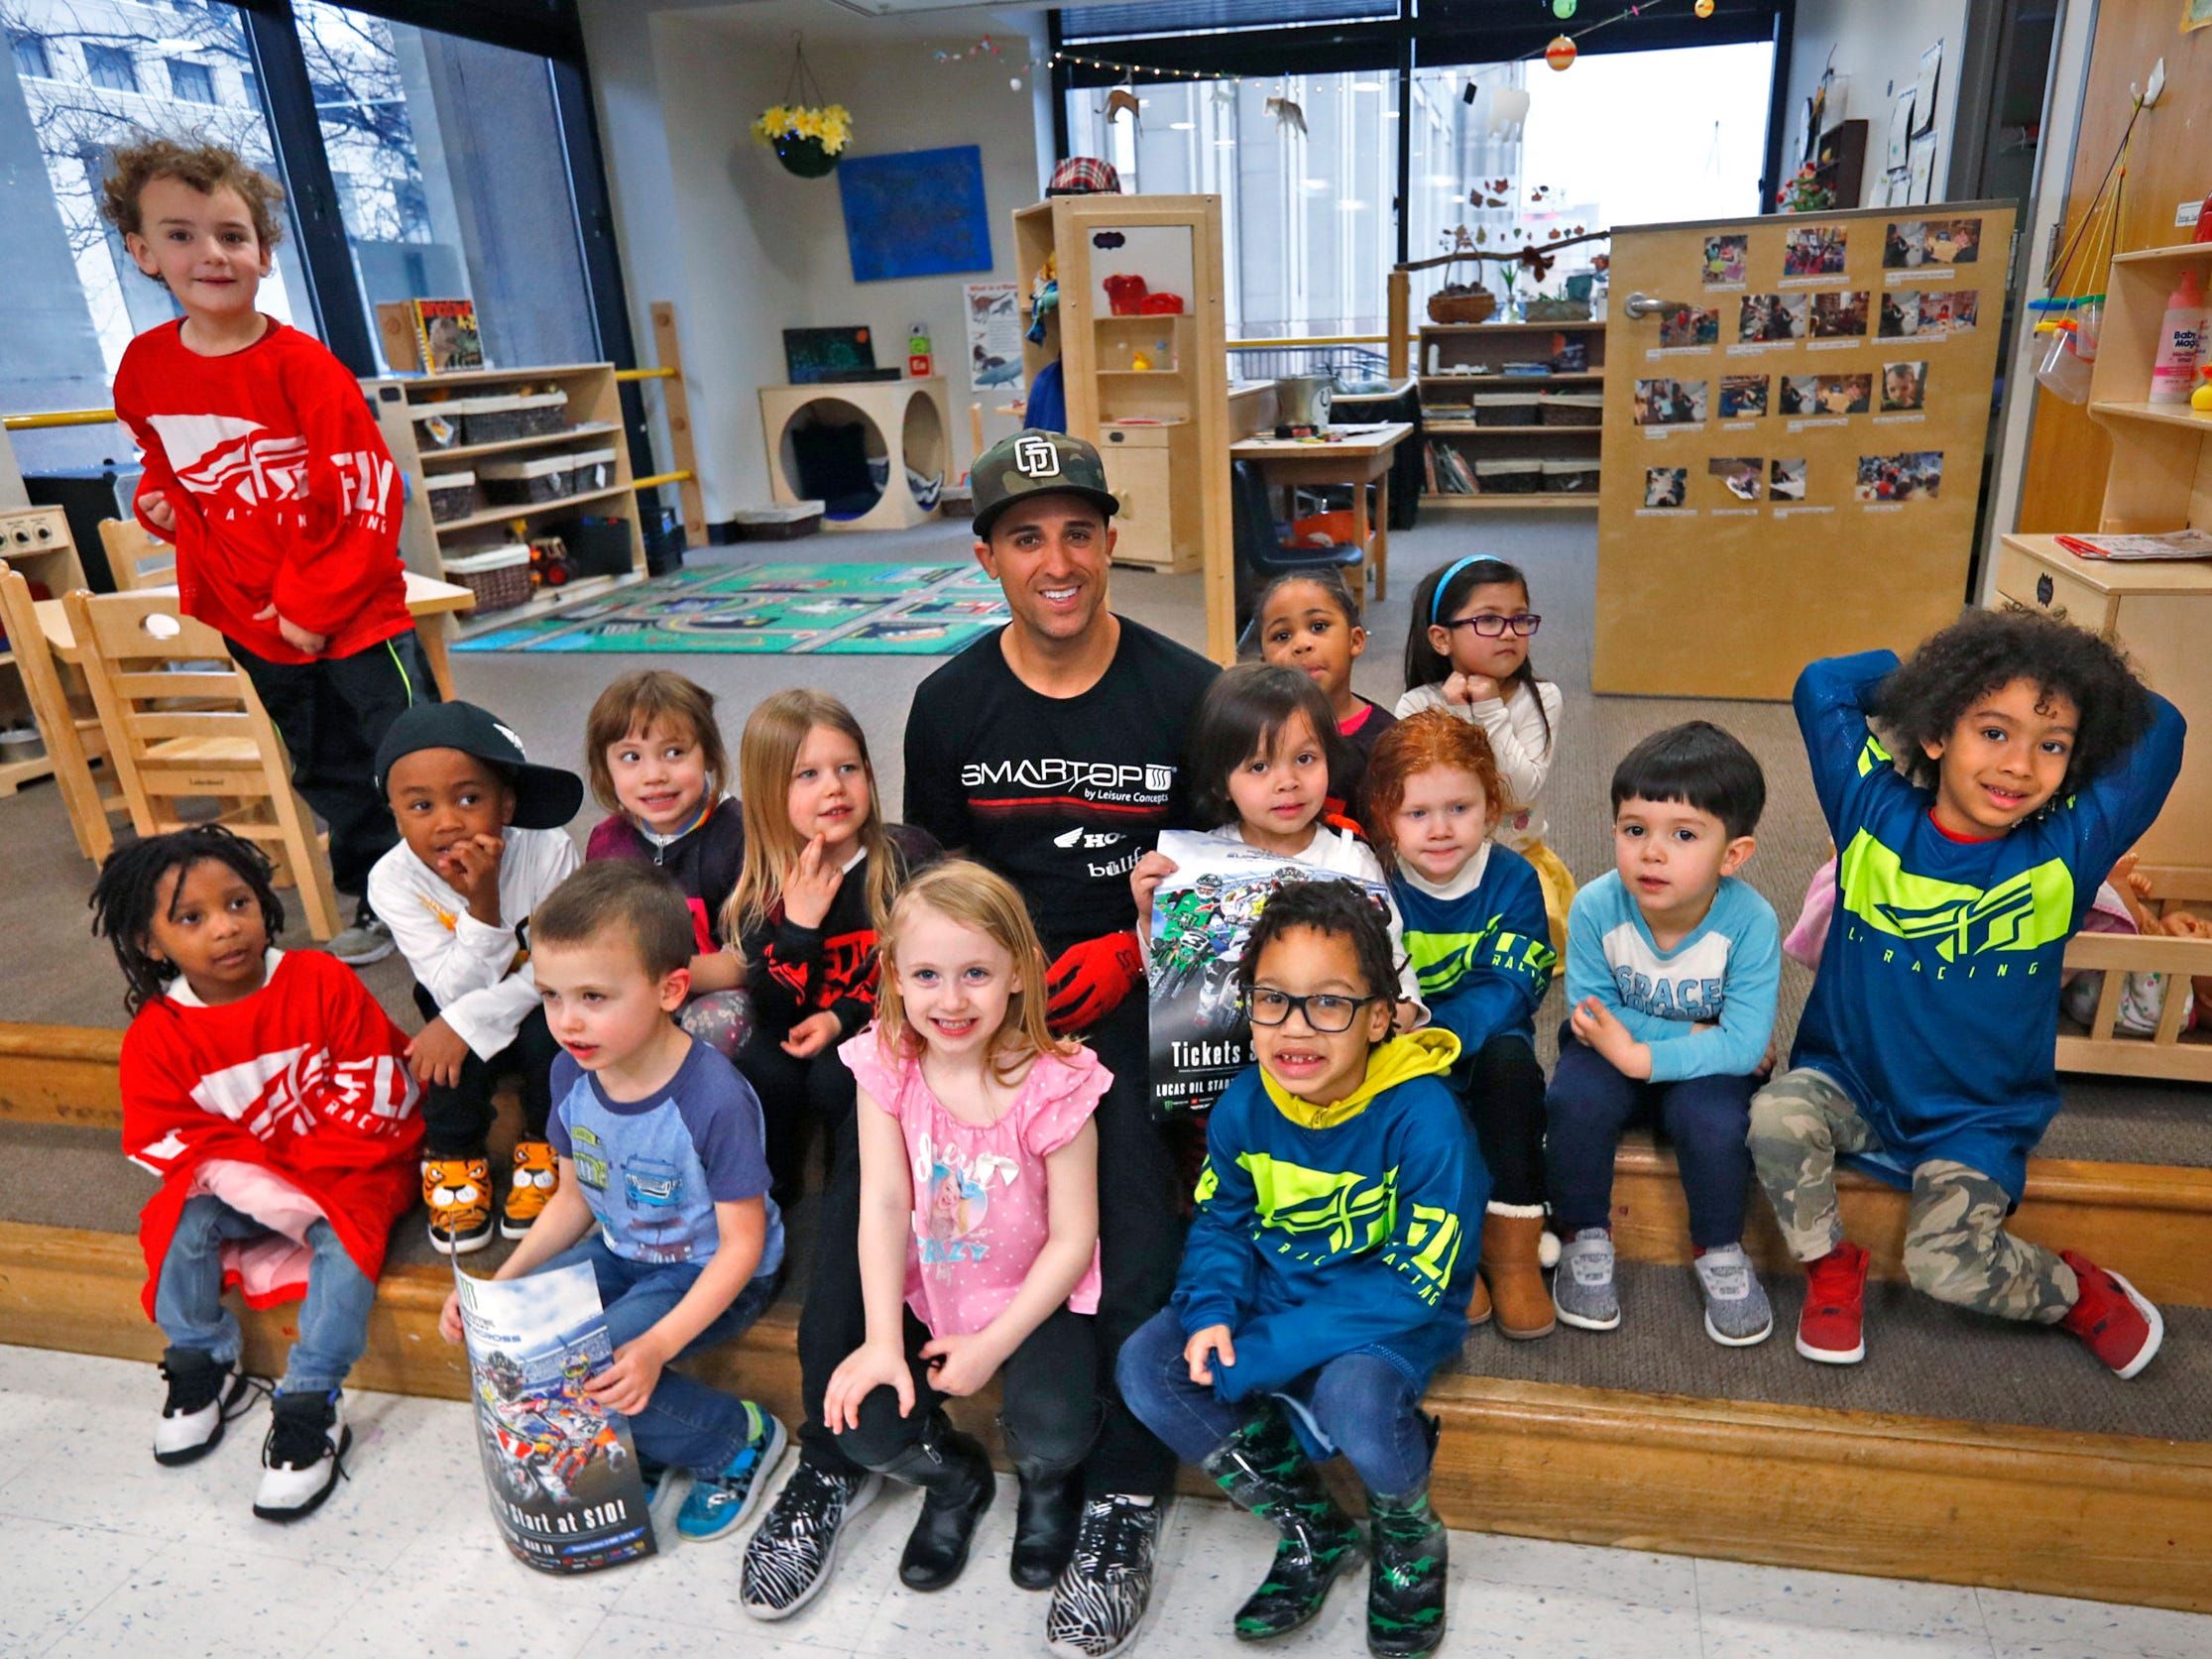 Supercross racer Mike Alessi poses for a photo as he visits with kids at Day Early Learning Center, Thursday, March 14, 2019.  Alessi provided Supercross rider jerseys and hats for the kids and gave wagon rides, on a break before the upcoming Supercross race.